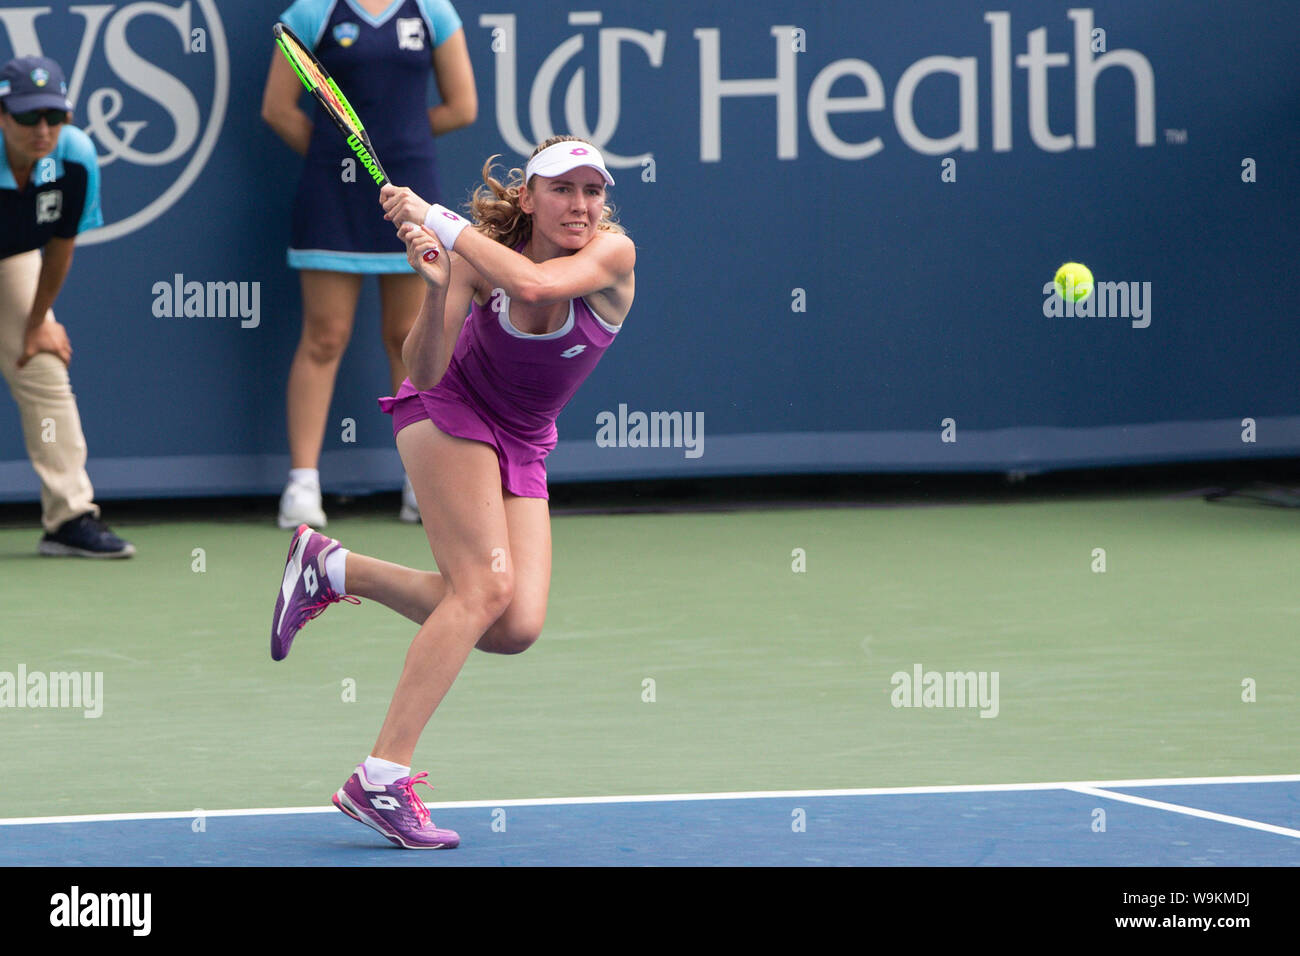 Mason, Ohio, USA. 14th Aug, 2019. Ekaterina Alexandrova (RUS) in action during Wednesday's round of the Western and Southern Open at the Lindner Family Tennis Center, Mason, Oh. Credit: Scott Stuart/ZUMA Wire/Alamy Live News Stock Photo